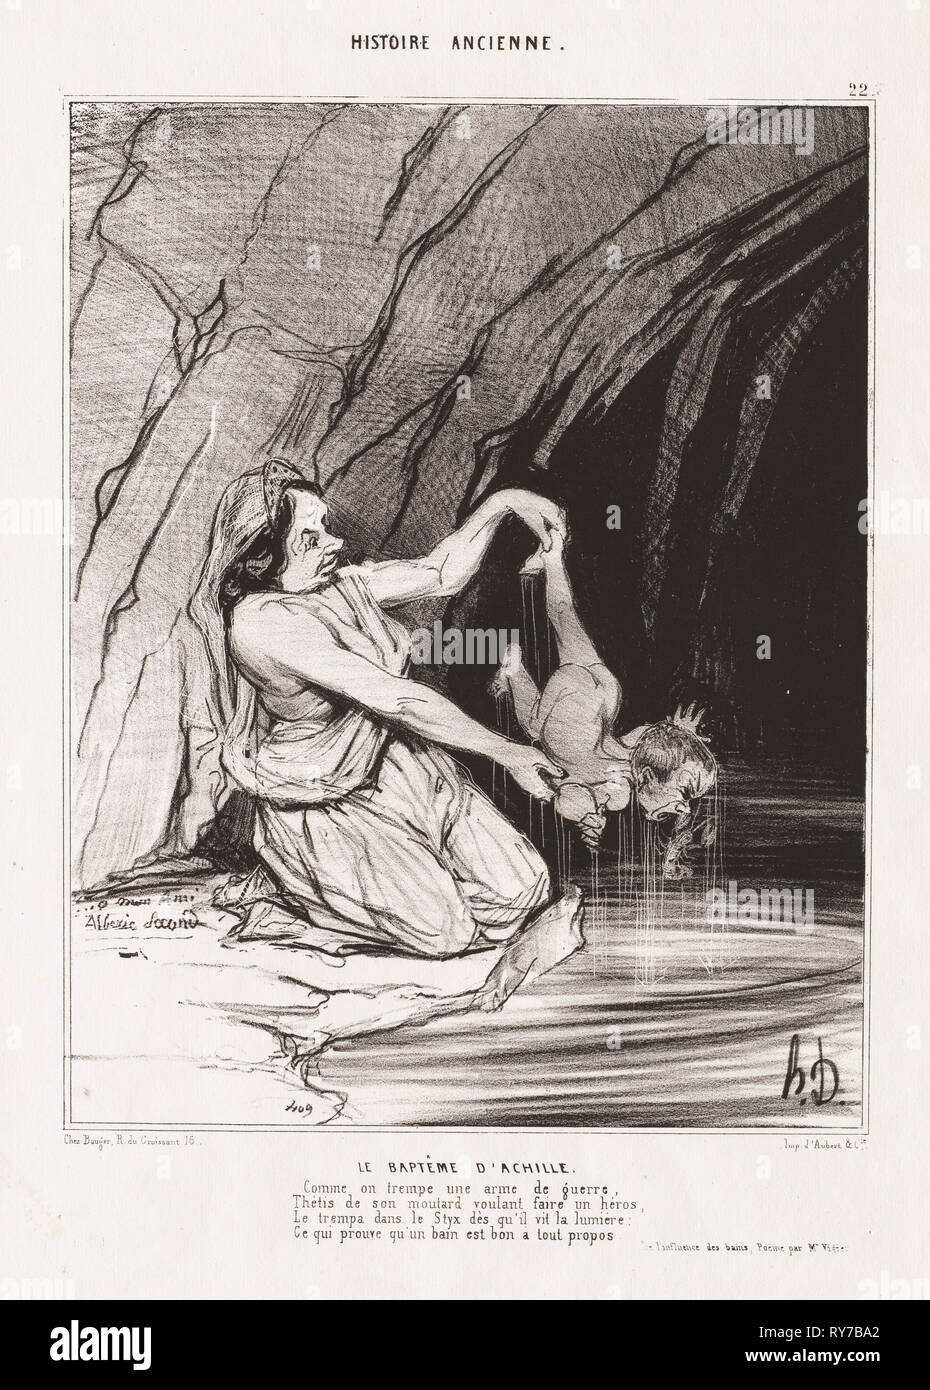 Ancient History: Pl. 22, The Baptism of Achilles . Honoré Daumier (French, 1808-1879). Lithograph; sheet: 33.6 x 25.5 cm (13 1/4 x 10 1/16 in.); image: 20.3 x 19.7 cm (8 x 7 3/4 in - Stock Image